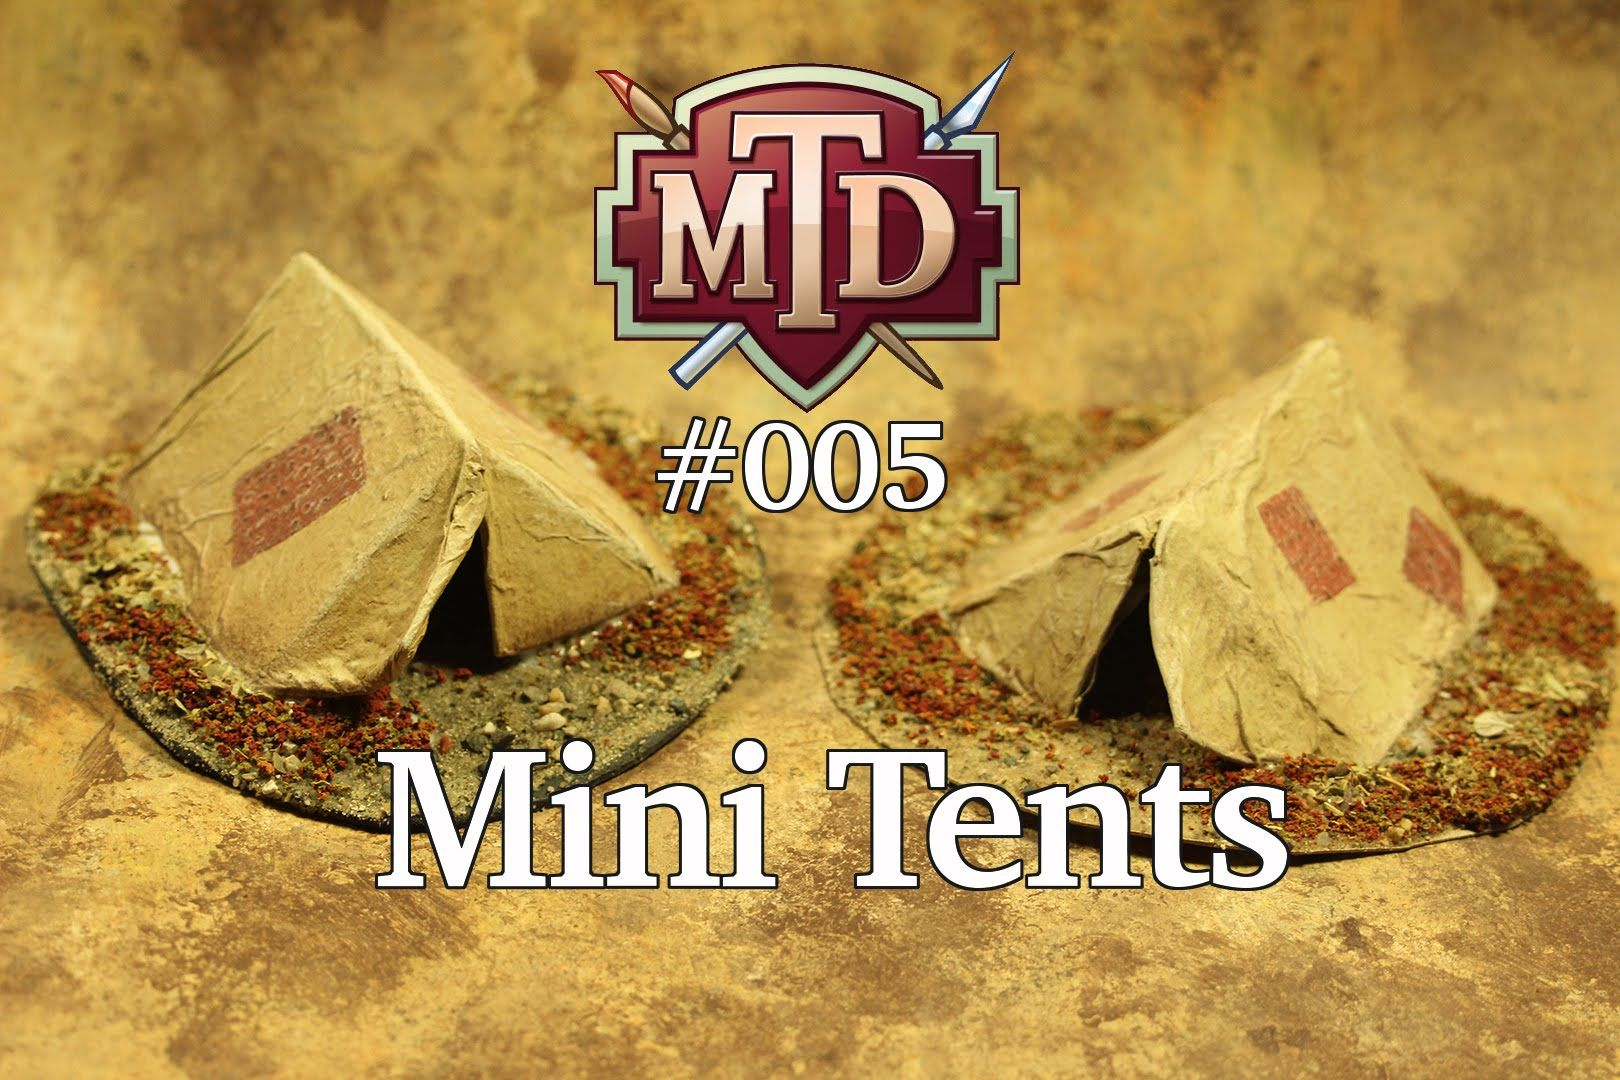 In this tutorial, I show you how to make simple miniature tents for